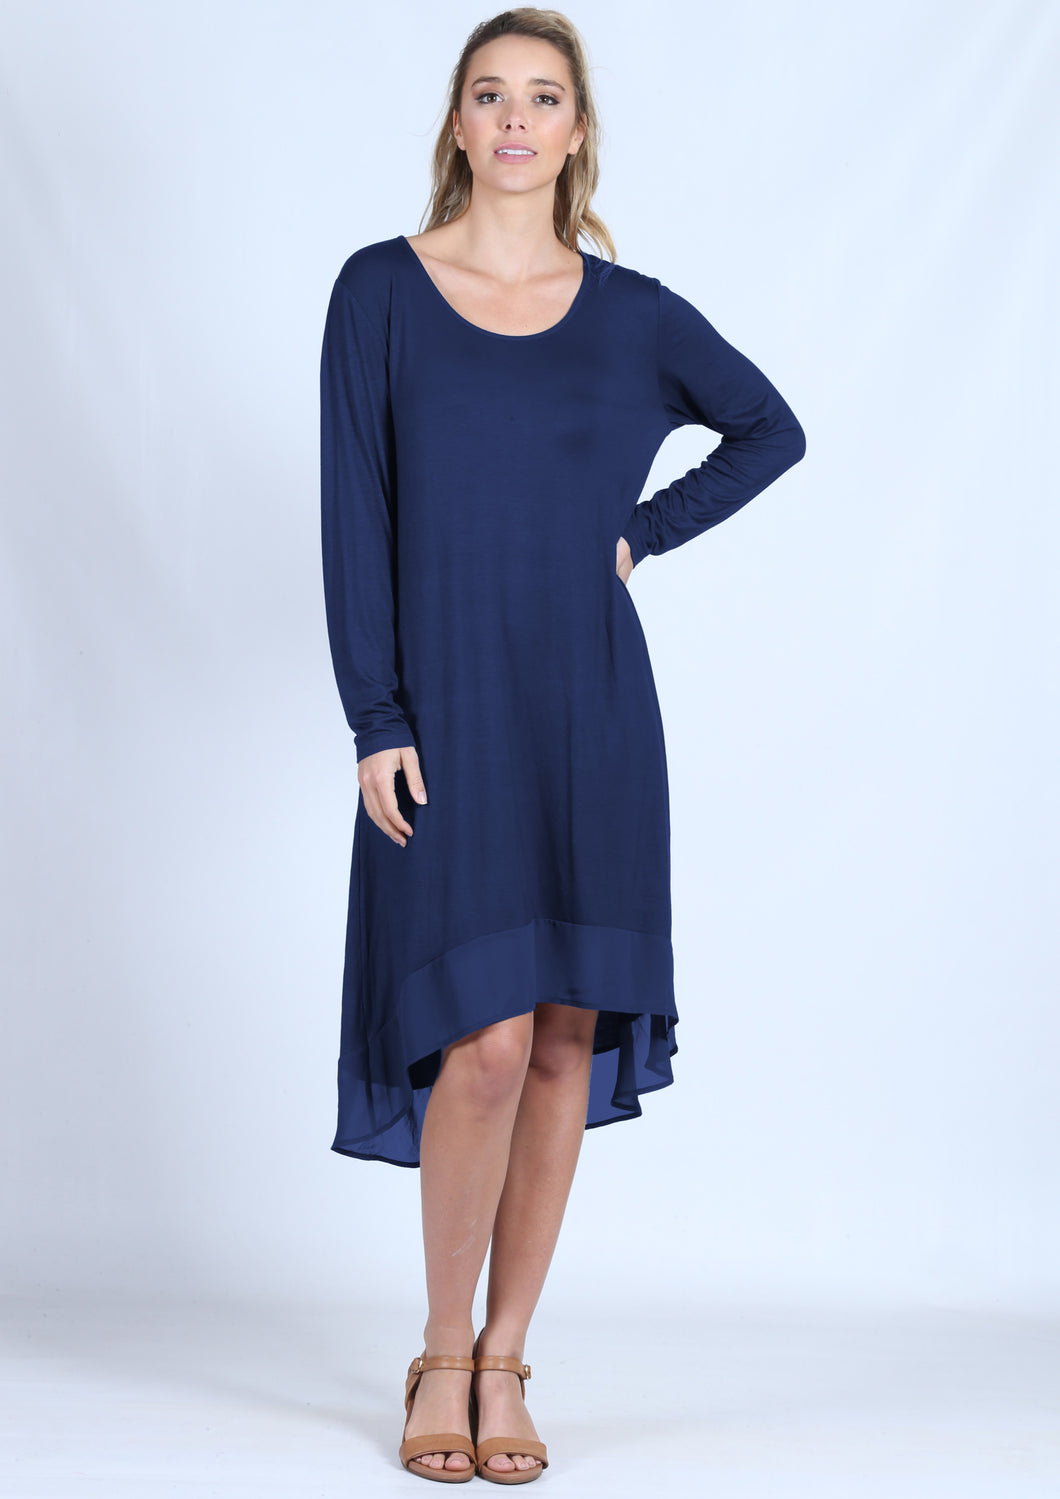 Copy of A071NC Long Sleeve Tunic Dress (Pack)